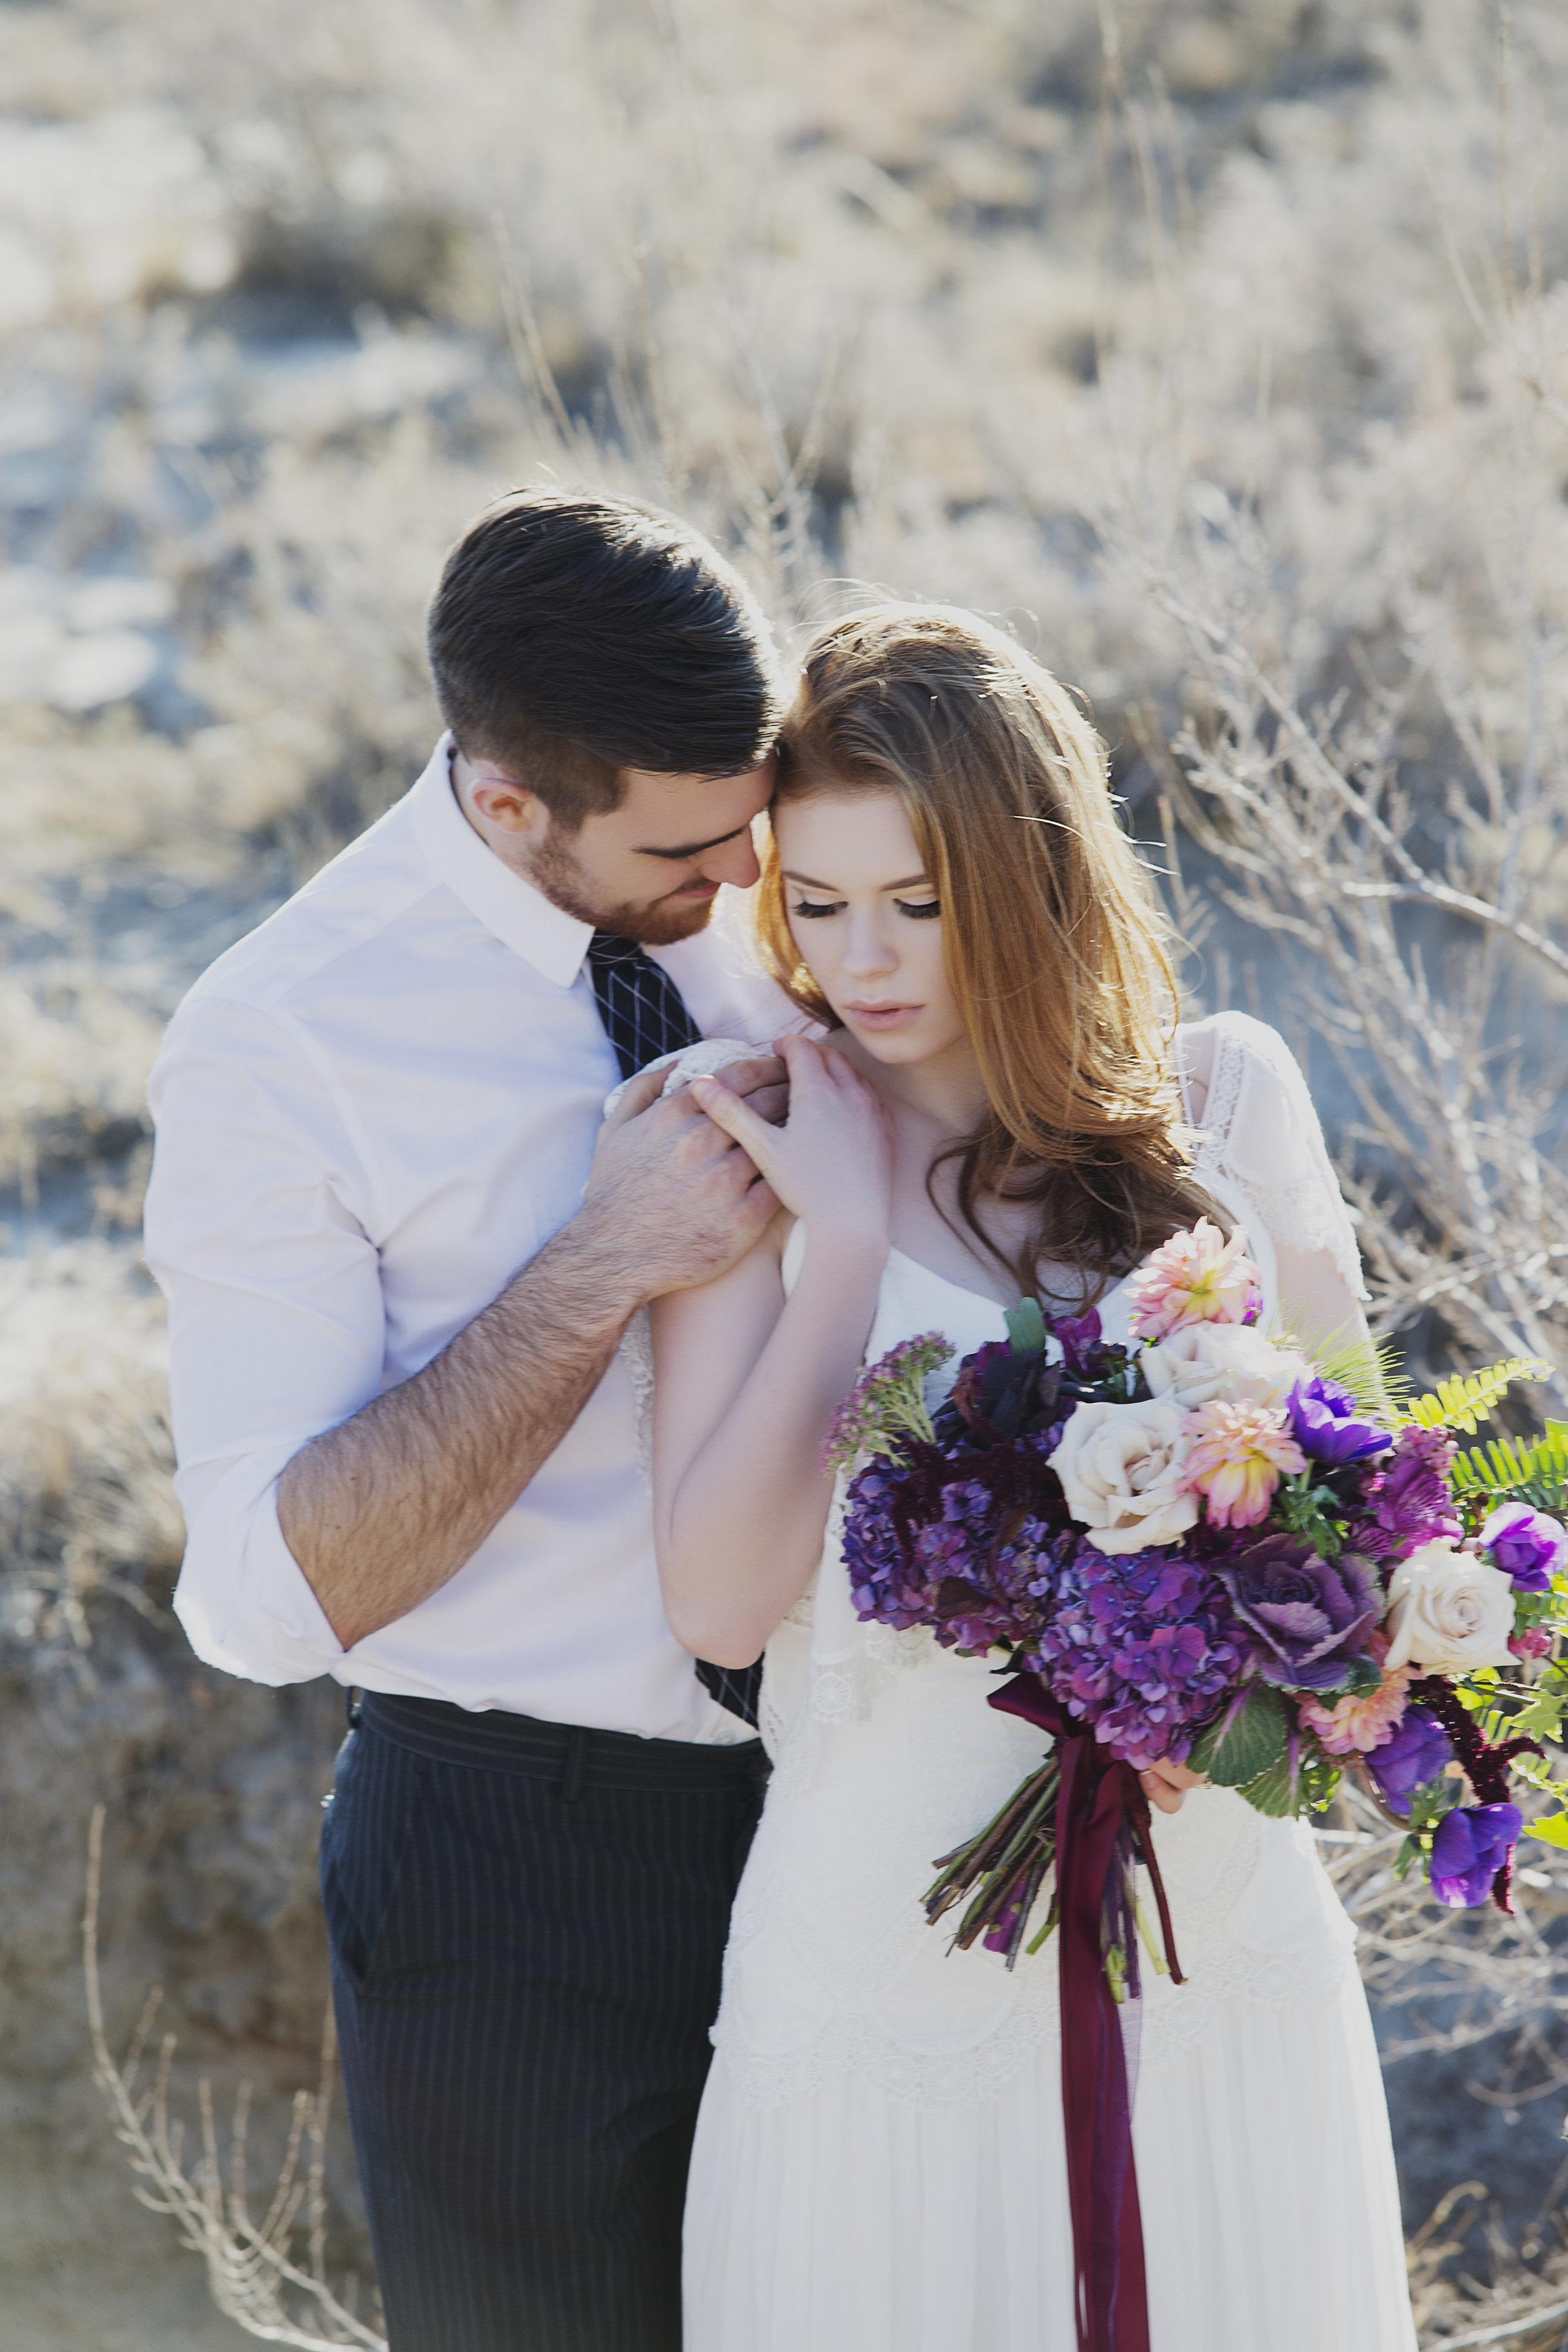 Drumheller, Alberta | Danielle Lucier Photography | Styled Shoot | Joy Wed blog | http://www.joy-wed.com